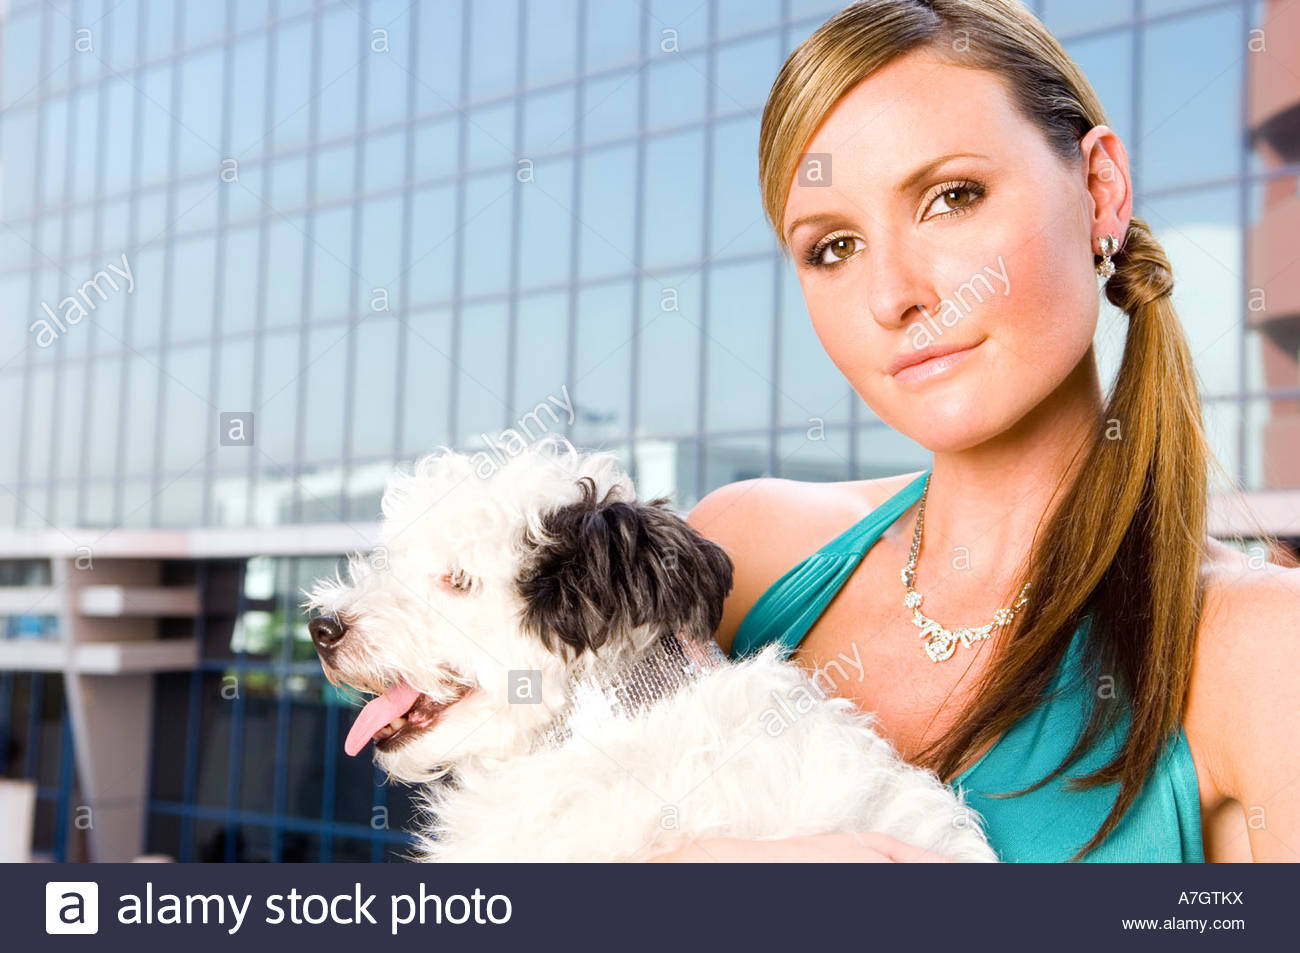 A woman holding a small dog - Stock Image